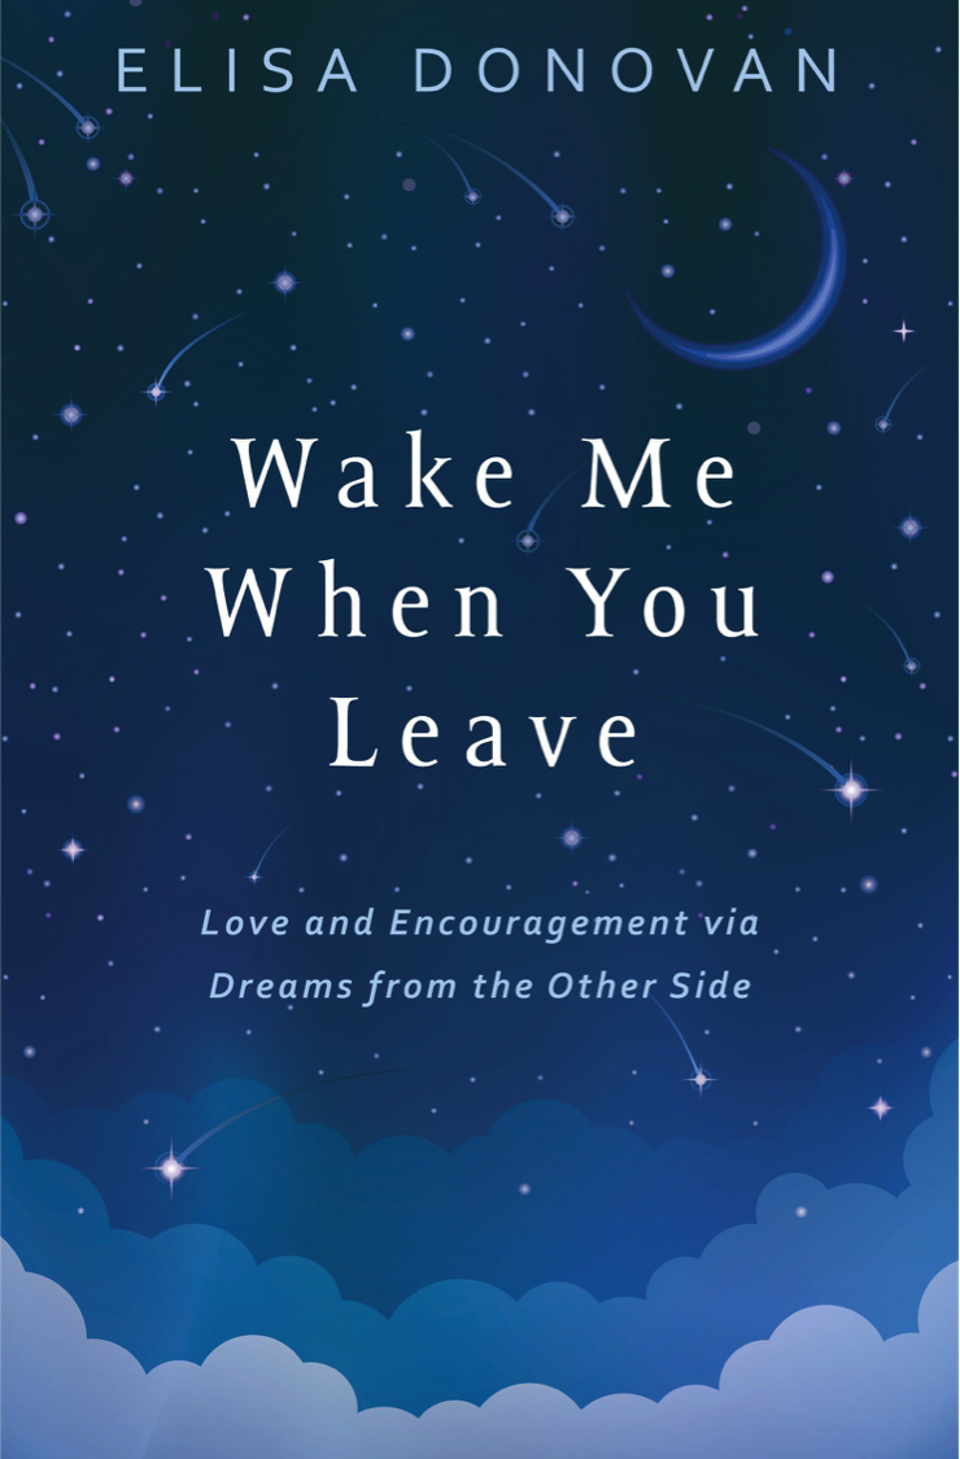 The book cover for Elisa Donovan's book Wake Me When You Leave